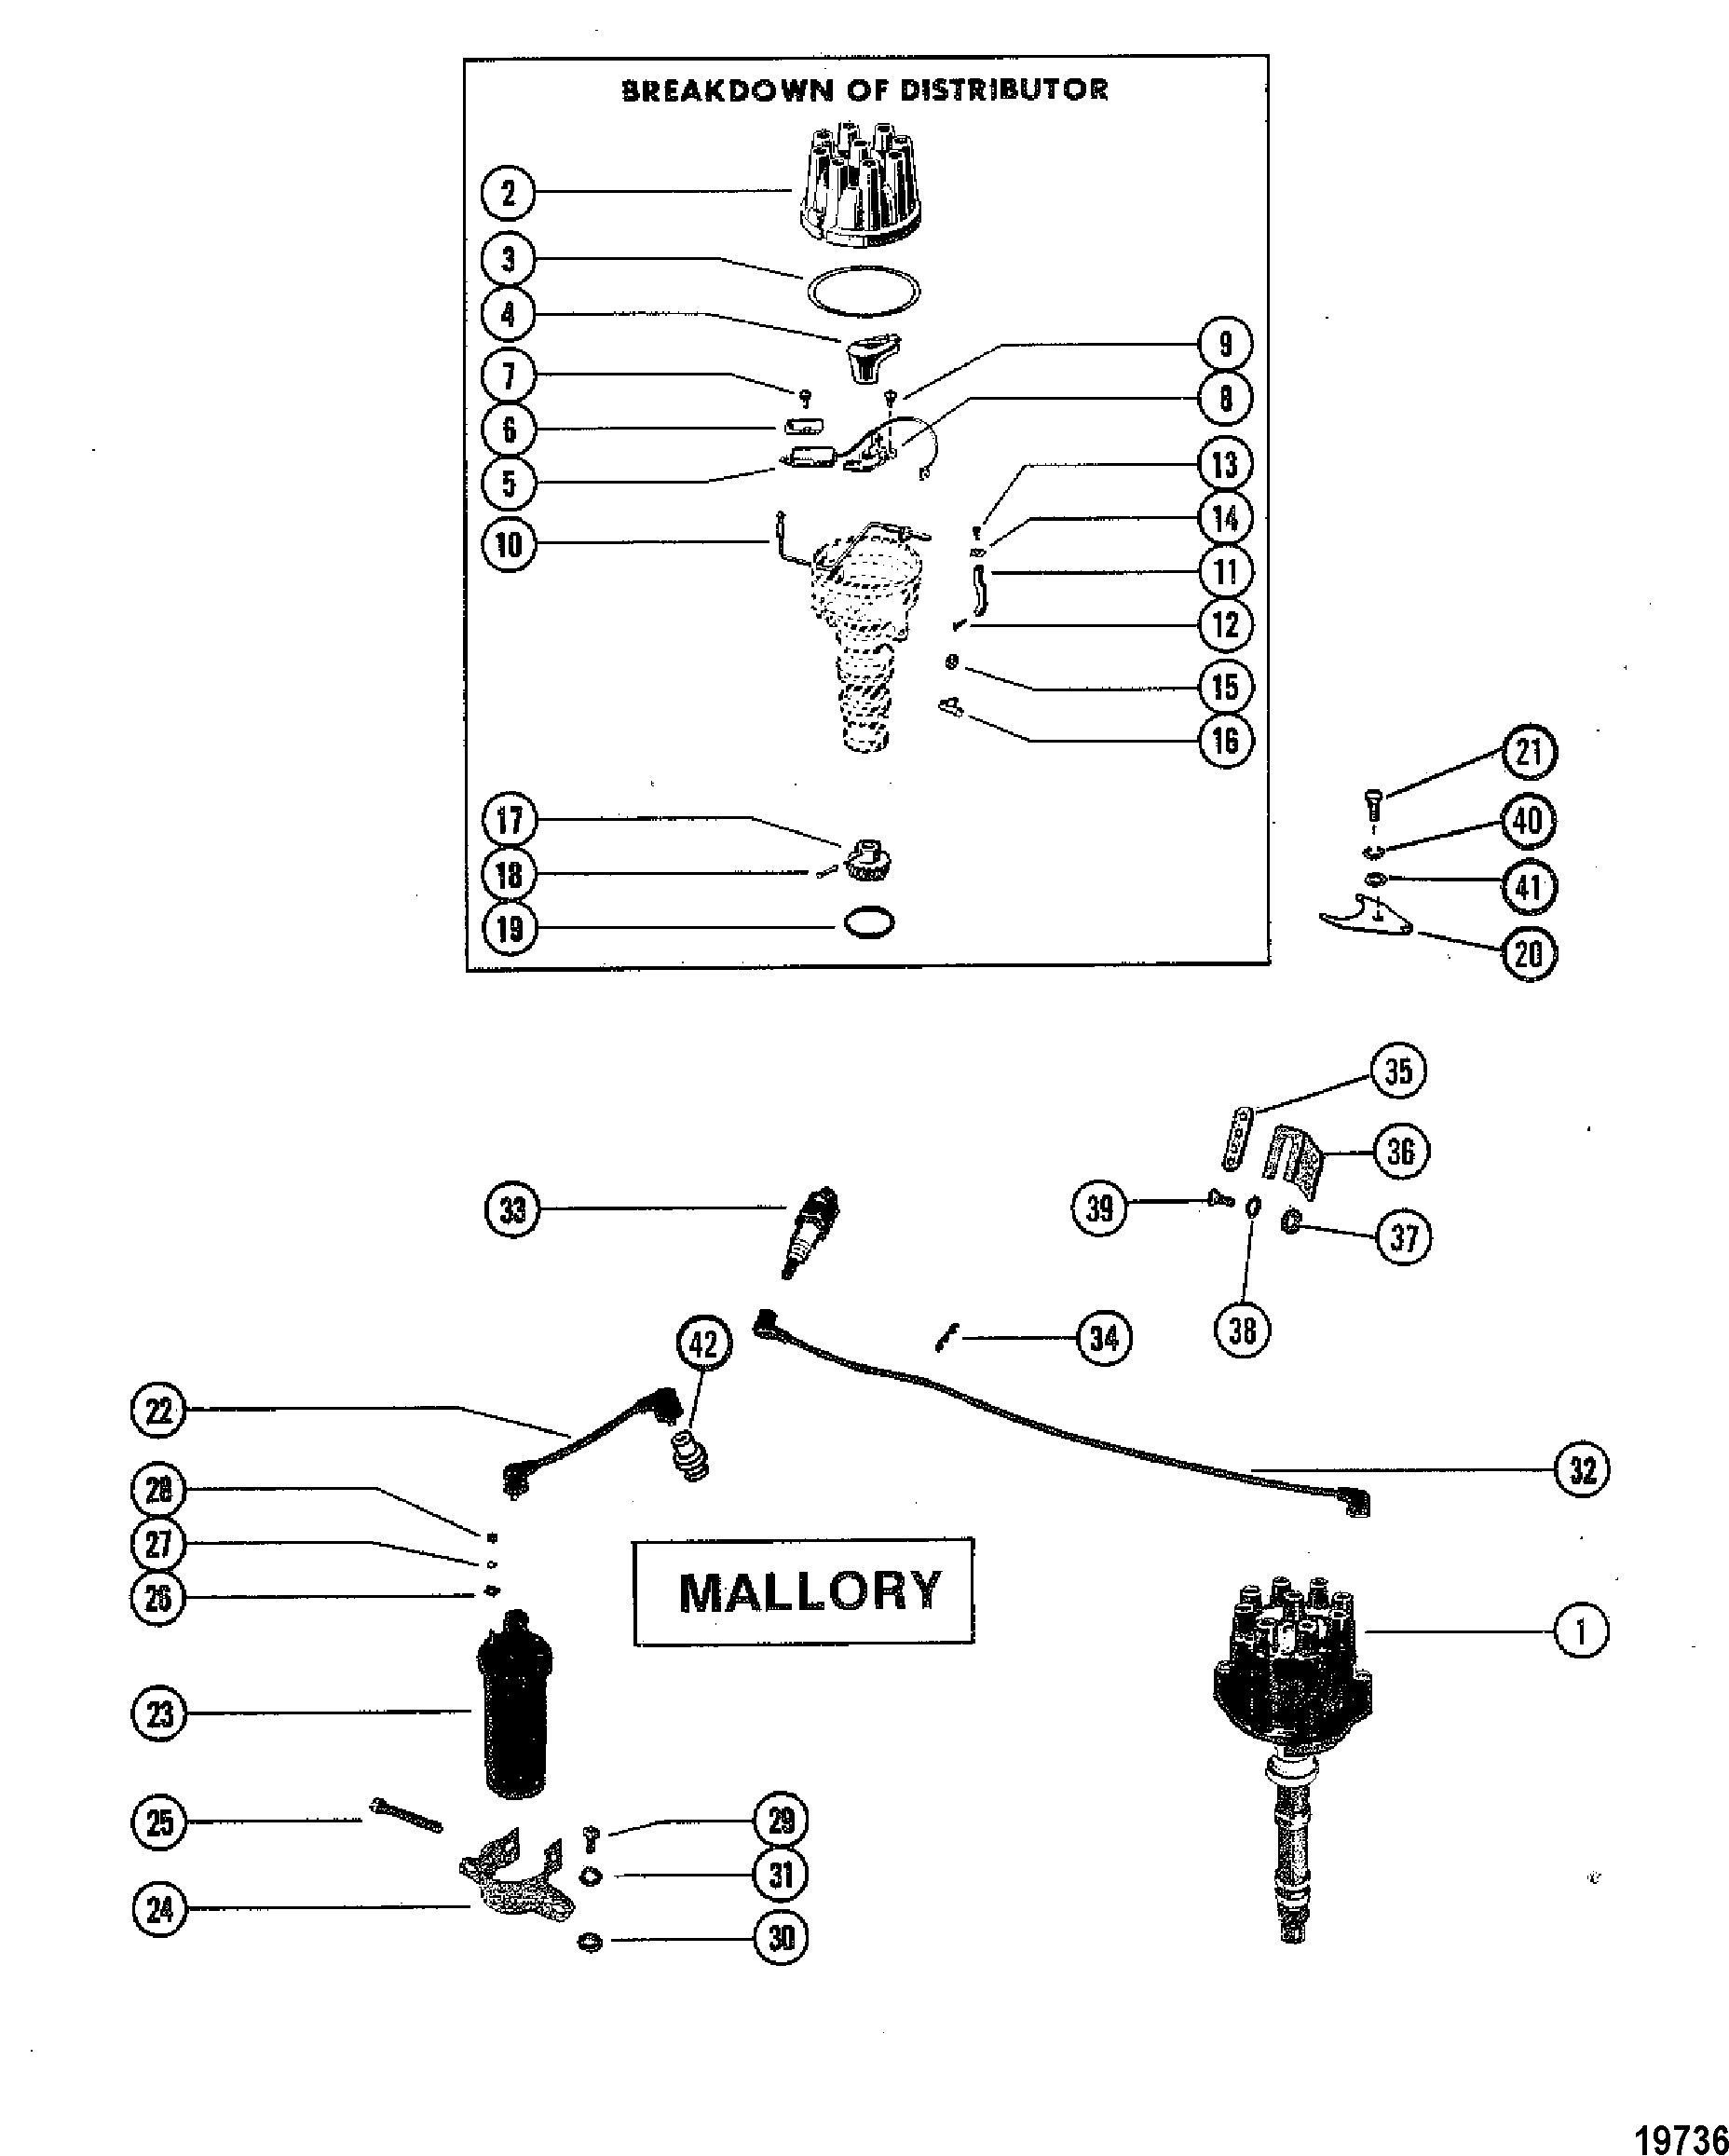 trouble shoot mallory firestorm 2a3 mallory hyfire ignition wiring diagram of trouble shoot mallory firestorm